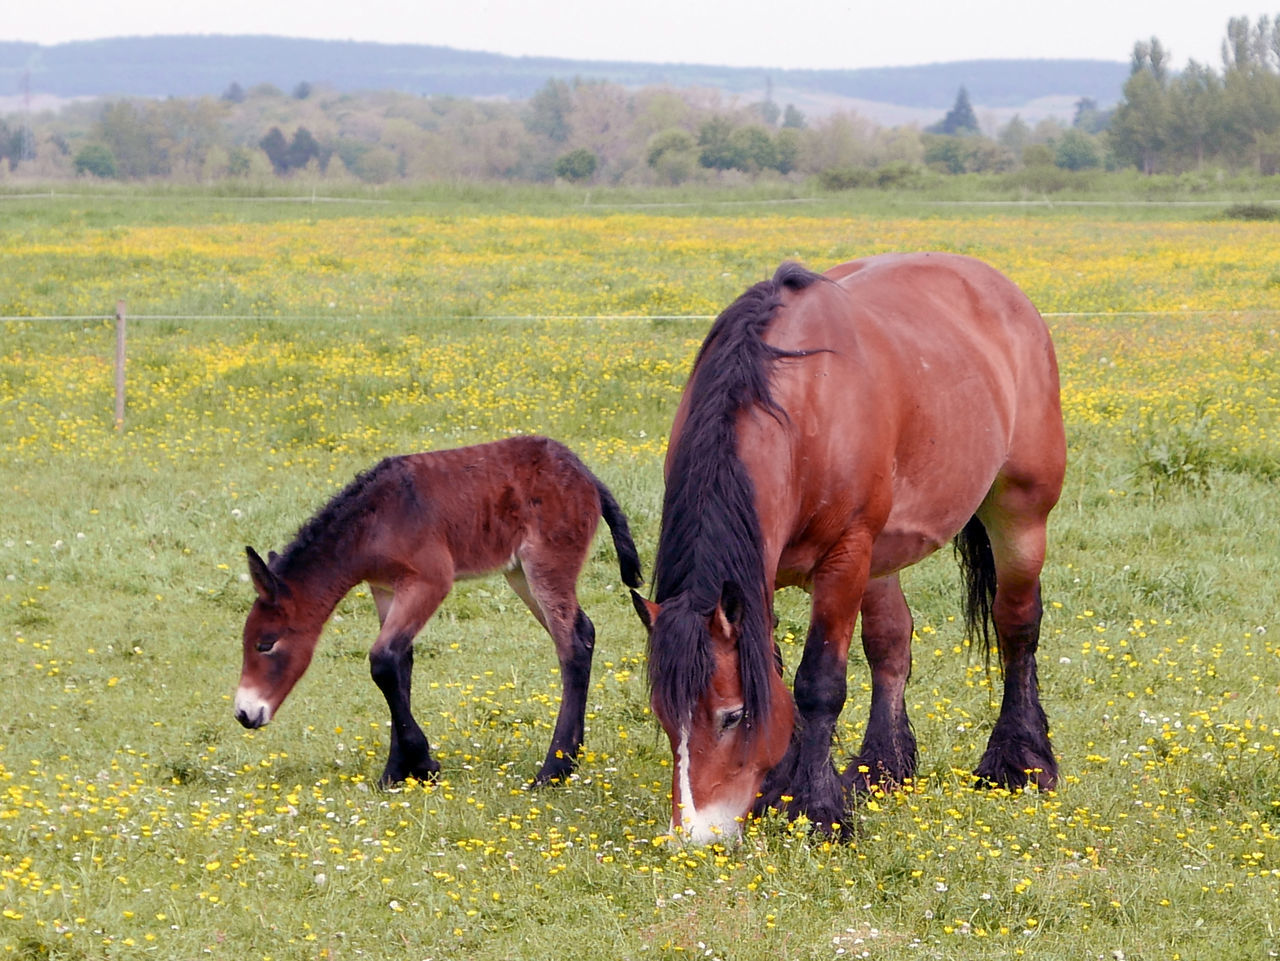 Beauty In Nature Brown Day Domestic Animals Field Grass Grassy Grazing Green Color Growth Herbivorous Landscape Livestock Mammal Nature No People Outdoors Pasture Rural Scene Animal Tranquil Scene Tranquility Foal Baby Horse Mother And Child